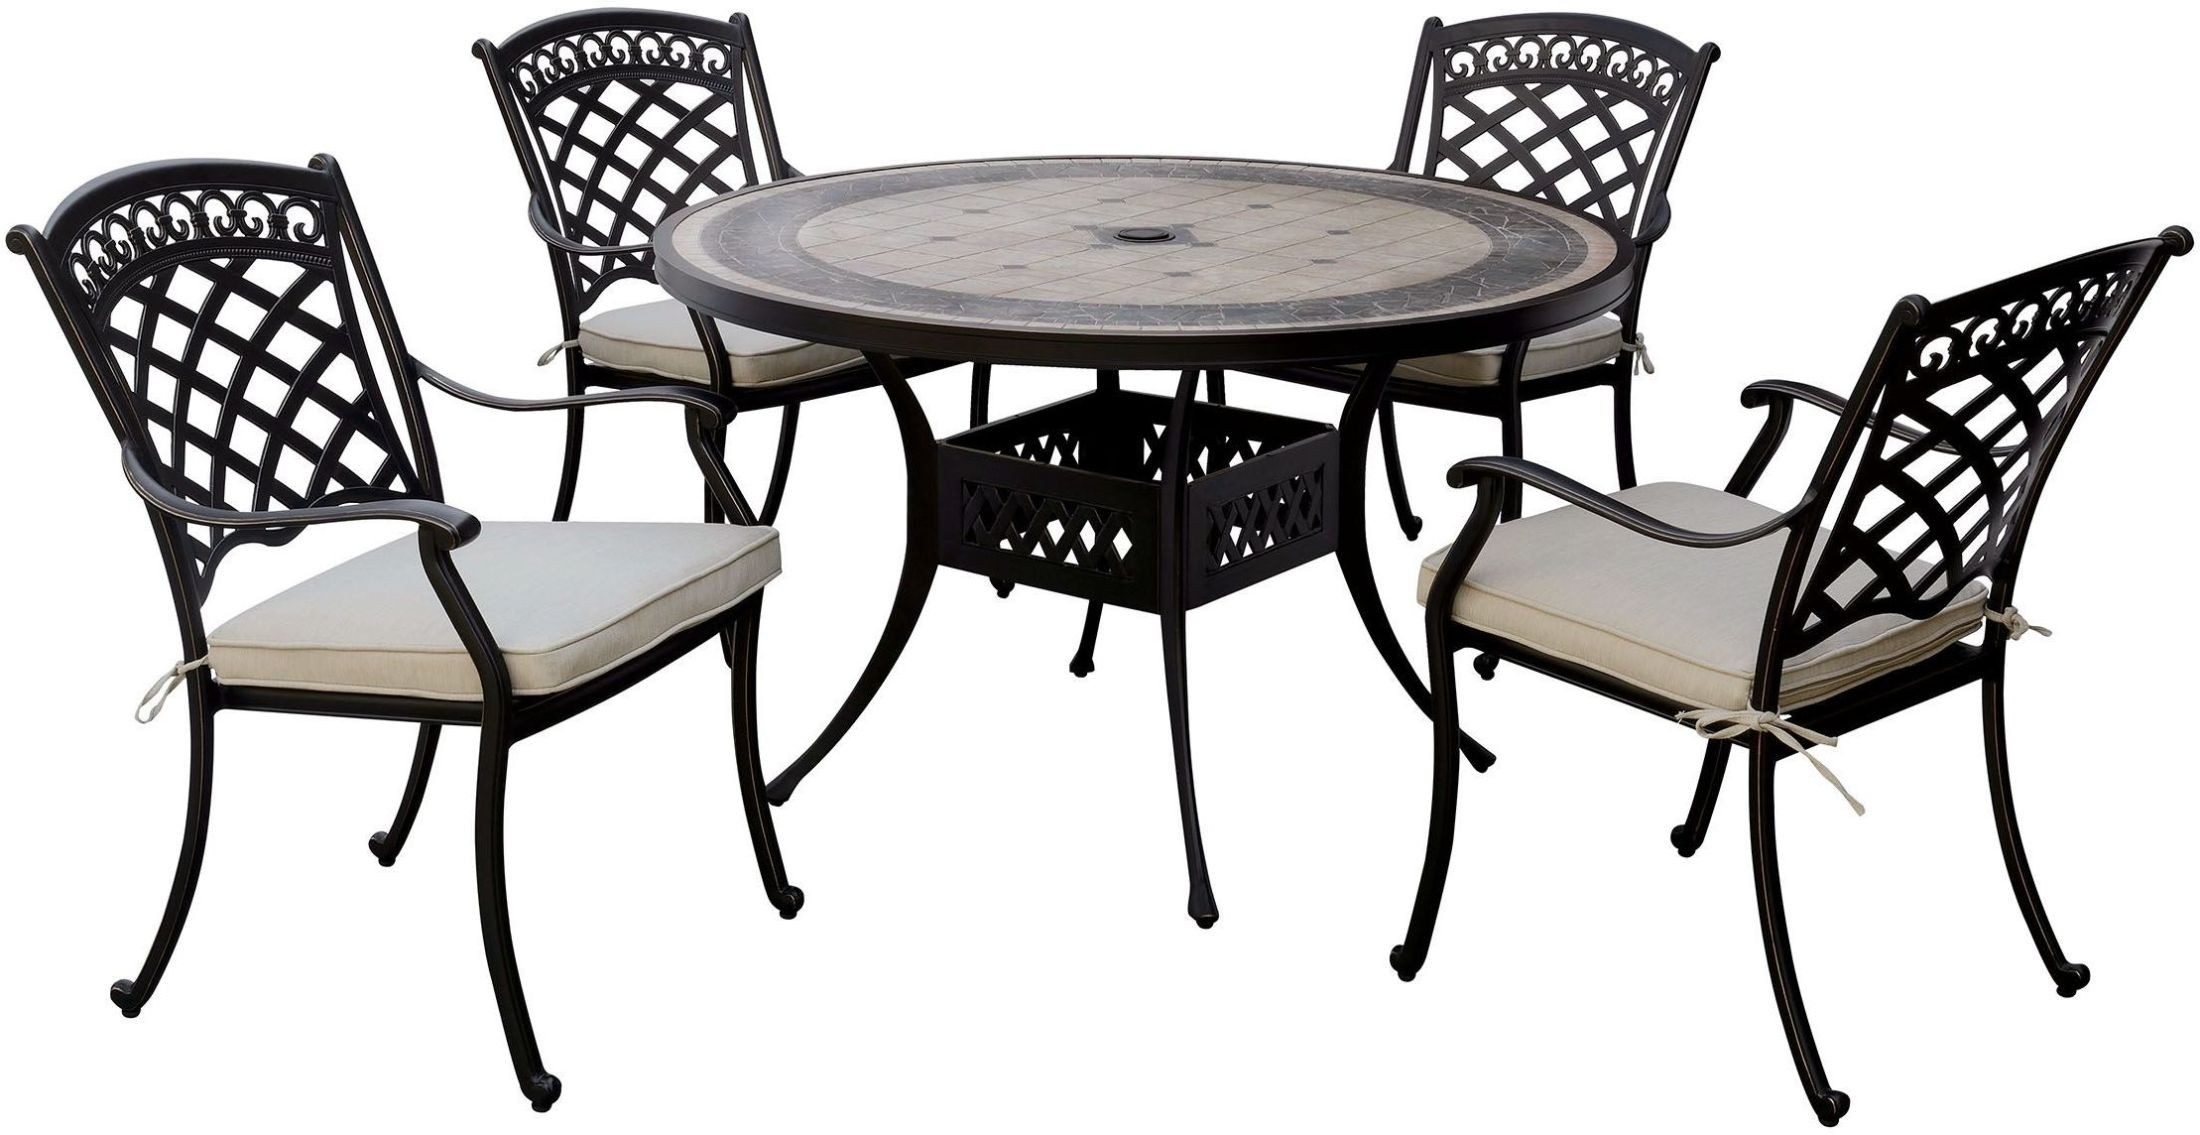 Charissa antique black round dining table cm ot2125 rt for Black round dining table